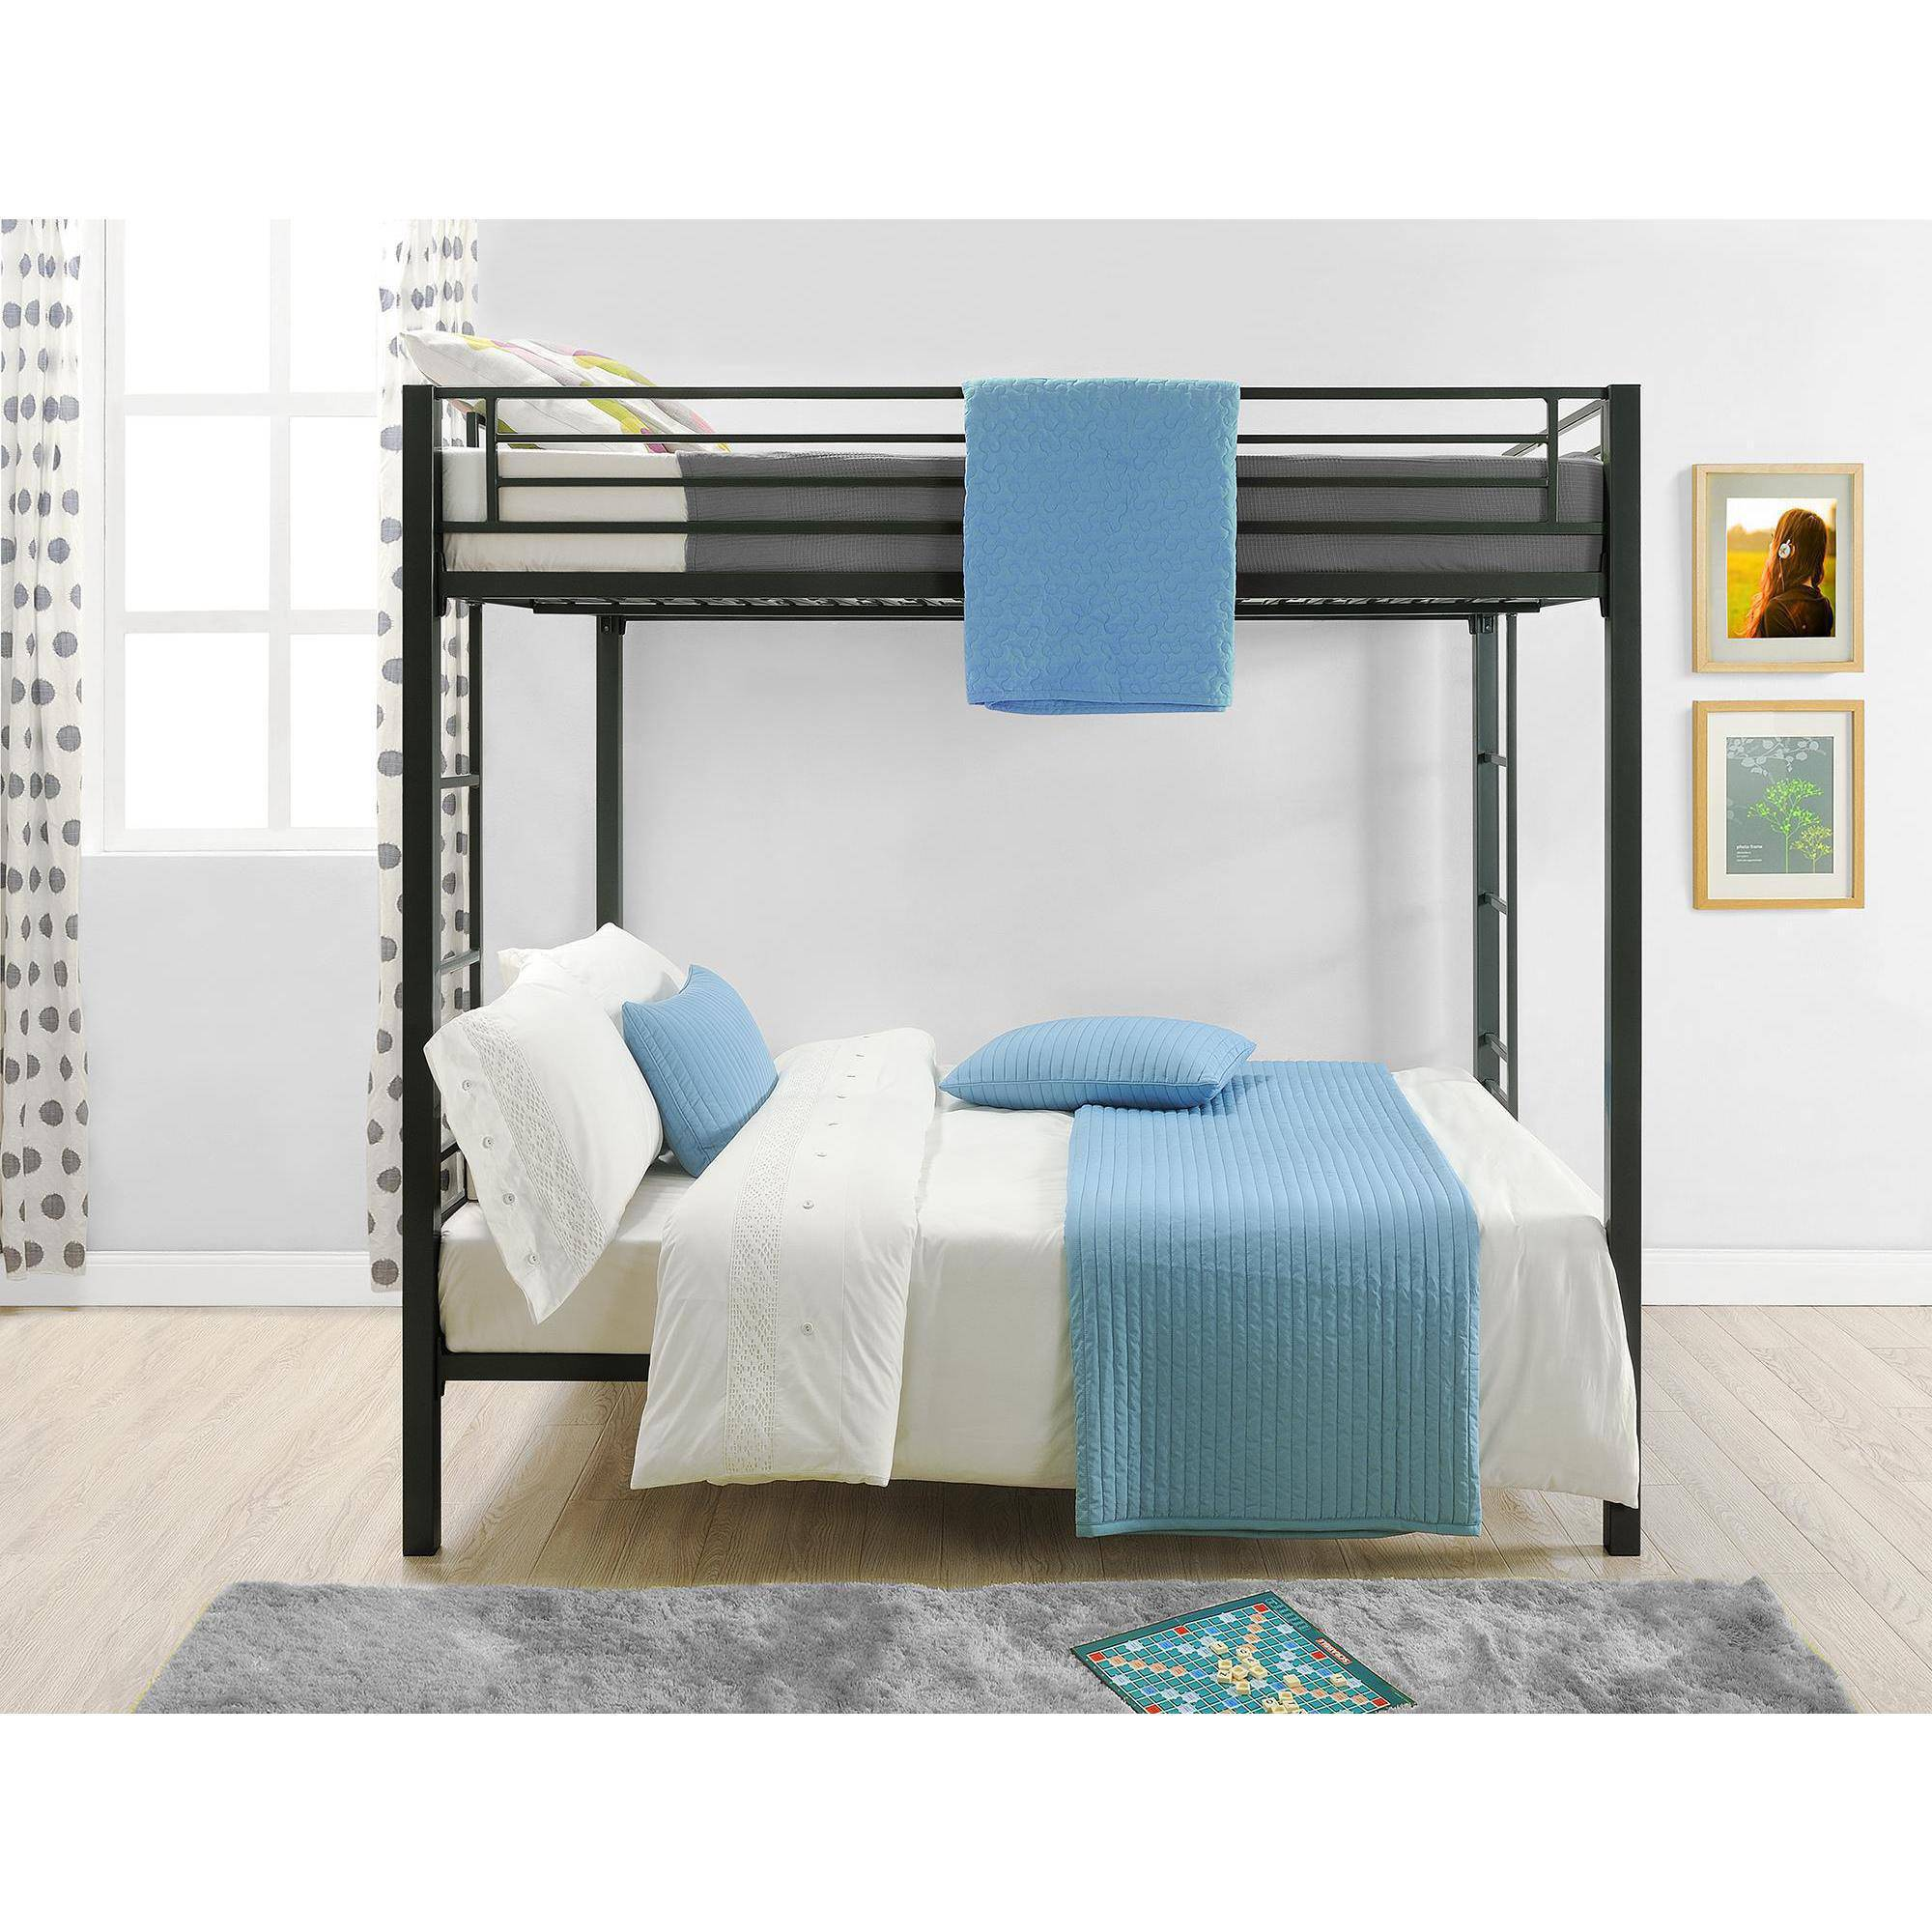 Dorel Full Over Full Metal Bunk Bed, Multiple Finishes   Walmart.com